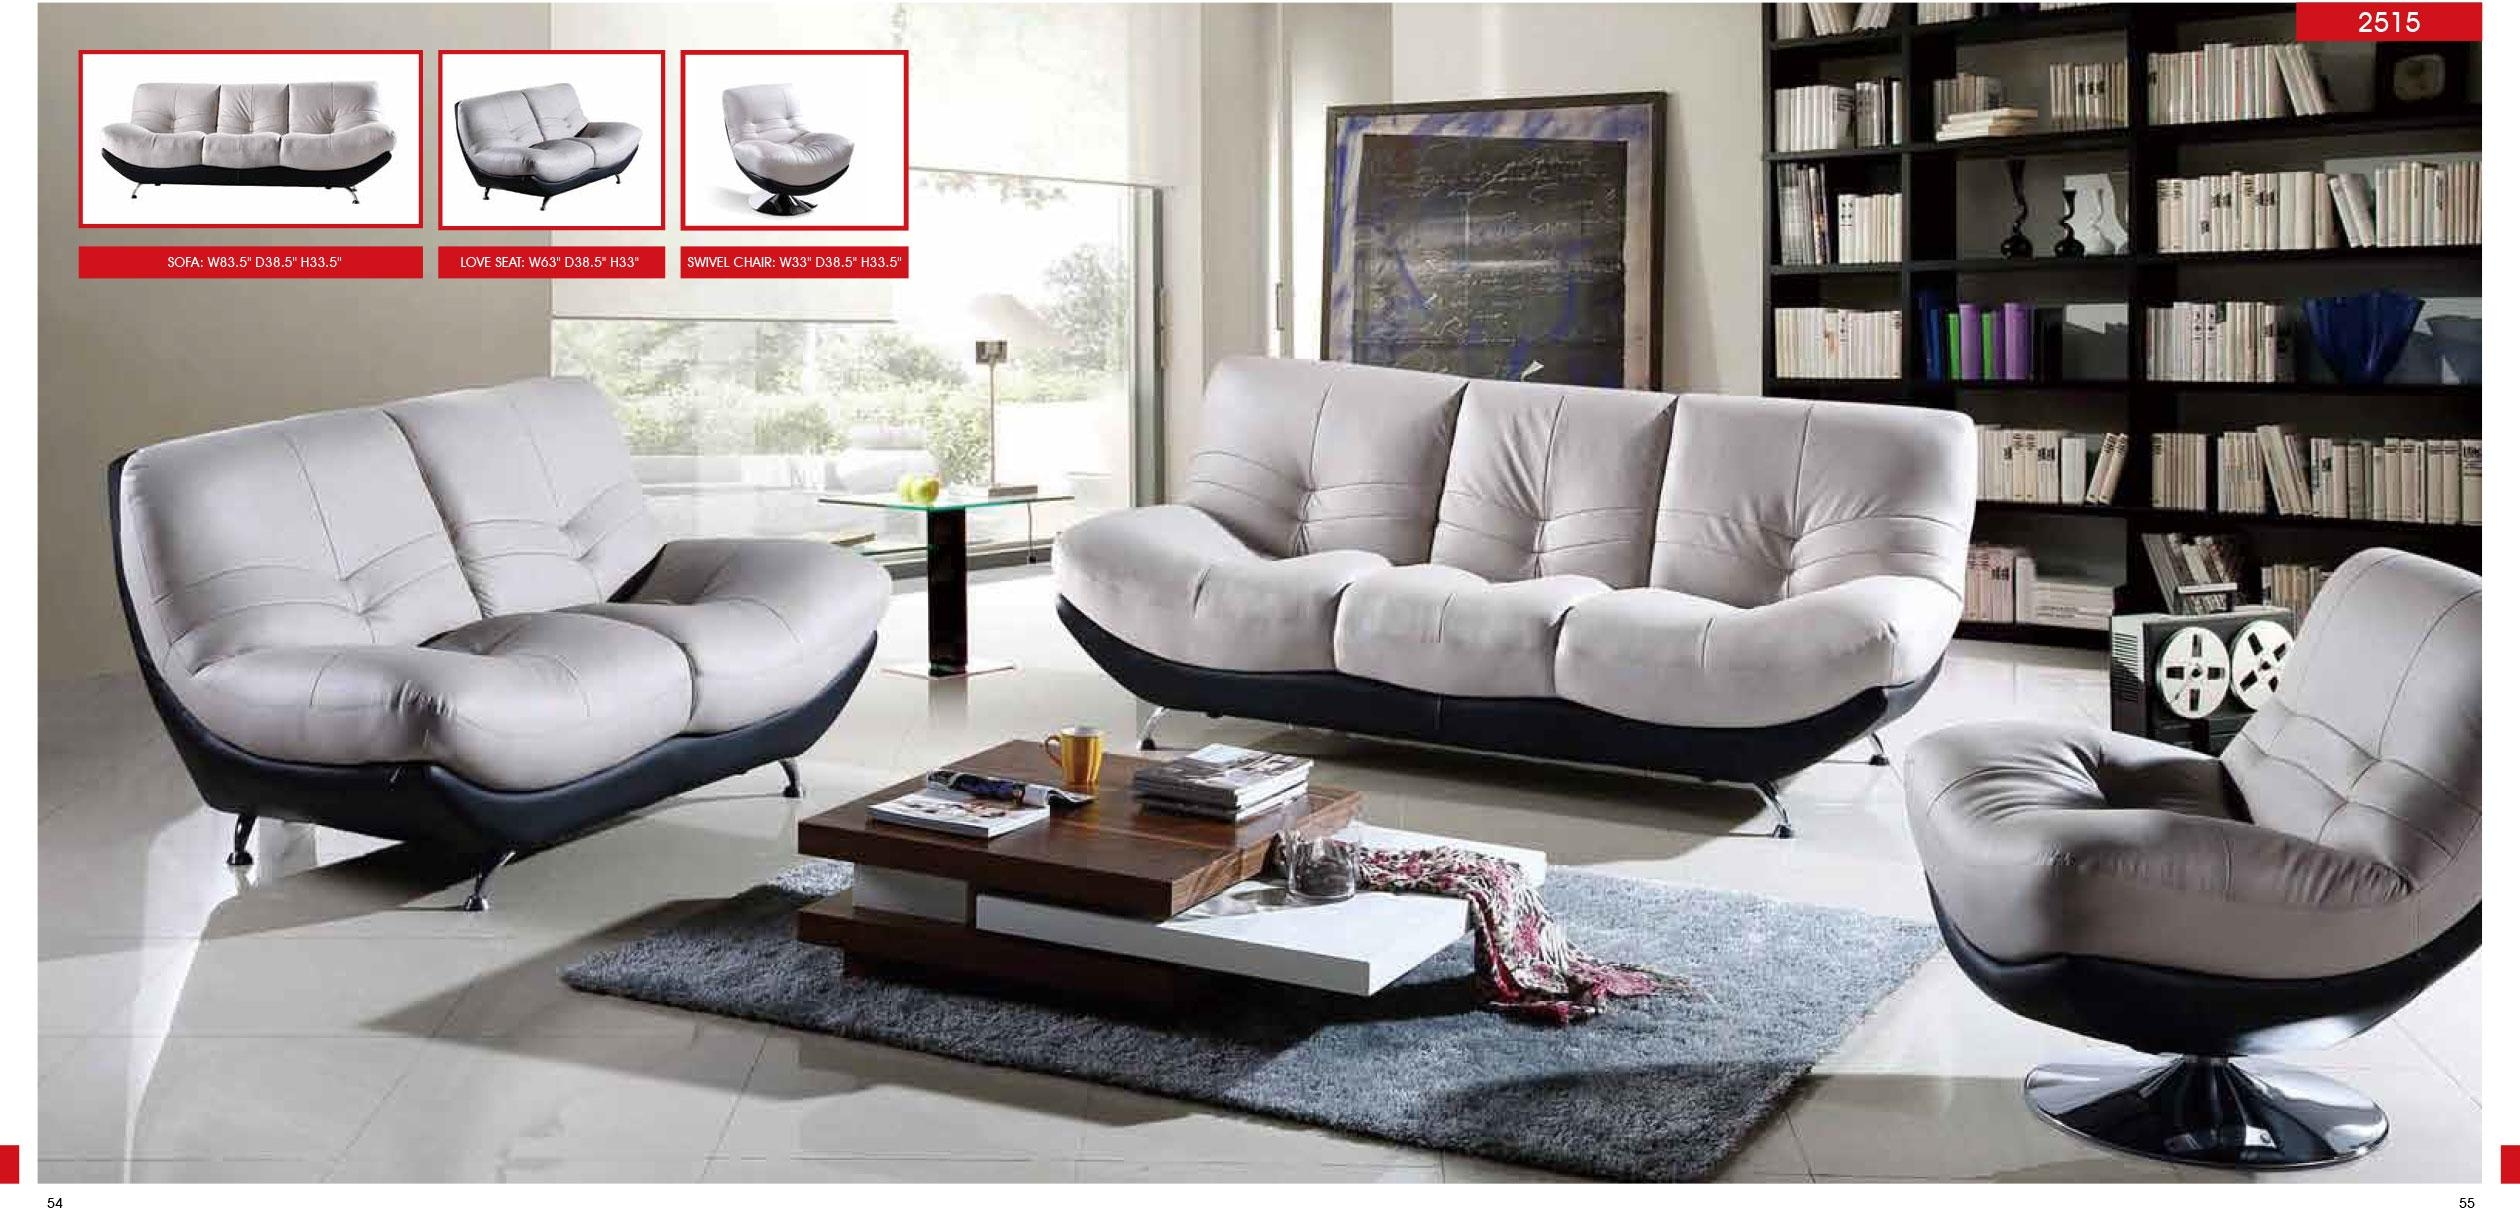 Chair Latest Furniture Designs For Living Room Marvelous Modern Pertaining To Living Room Sofa And Chair Sets (Image 2 of 20)